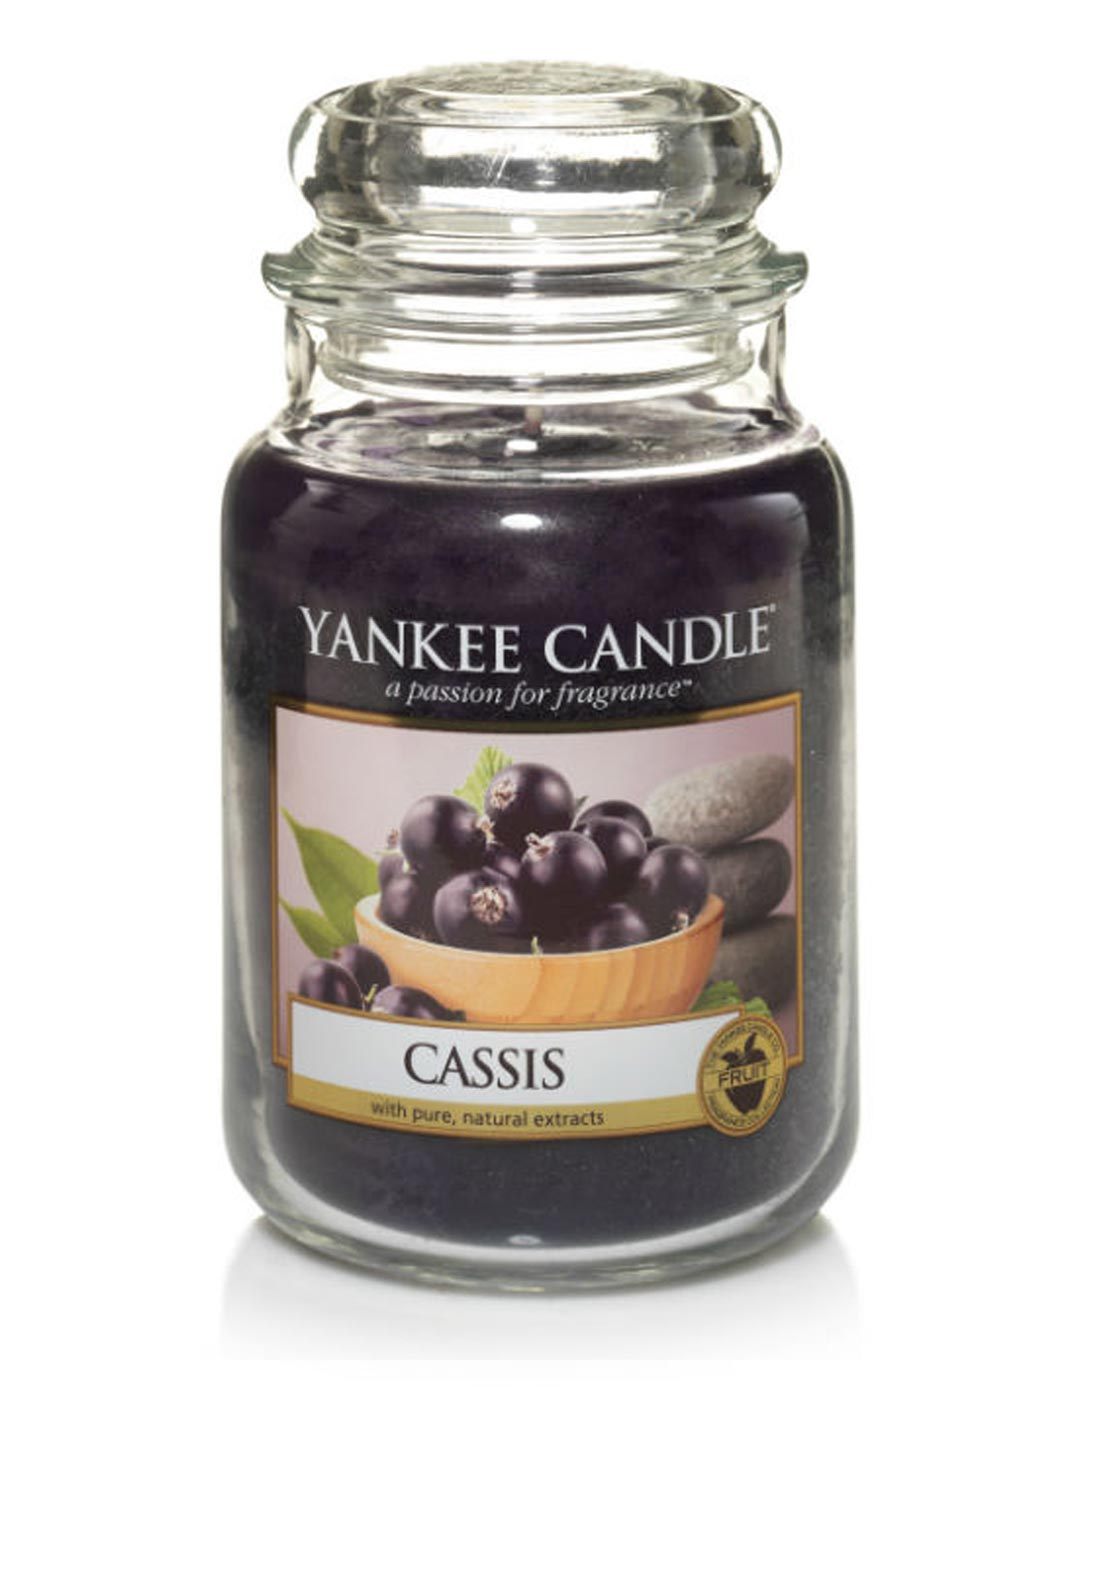 Yankee Candle Large Classic Jar, Cassis